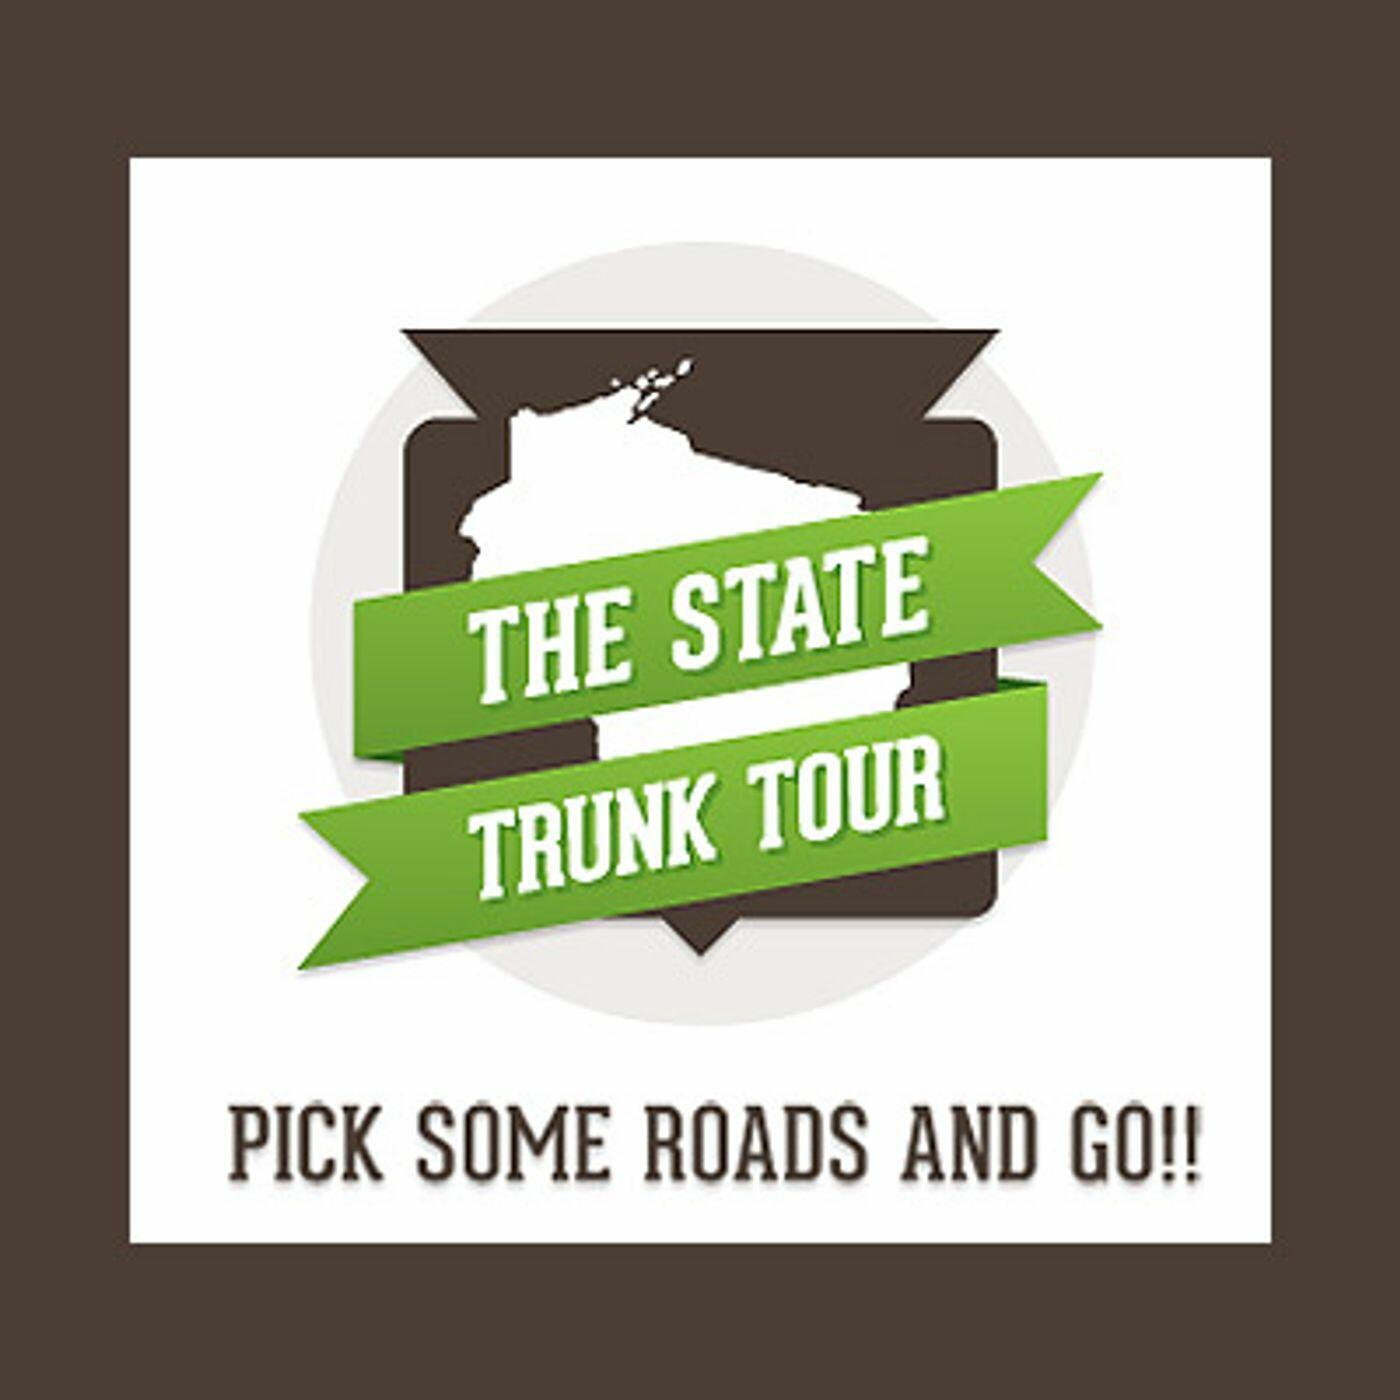 State Trunk Tour